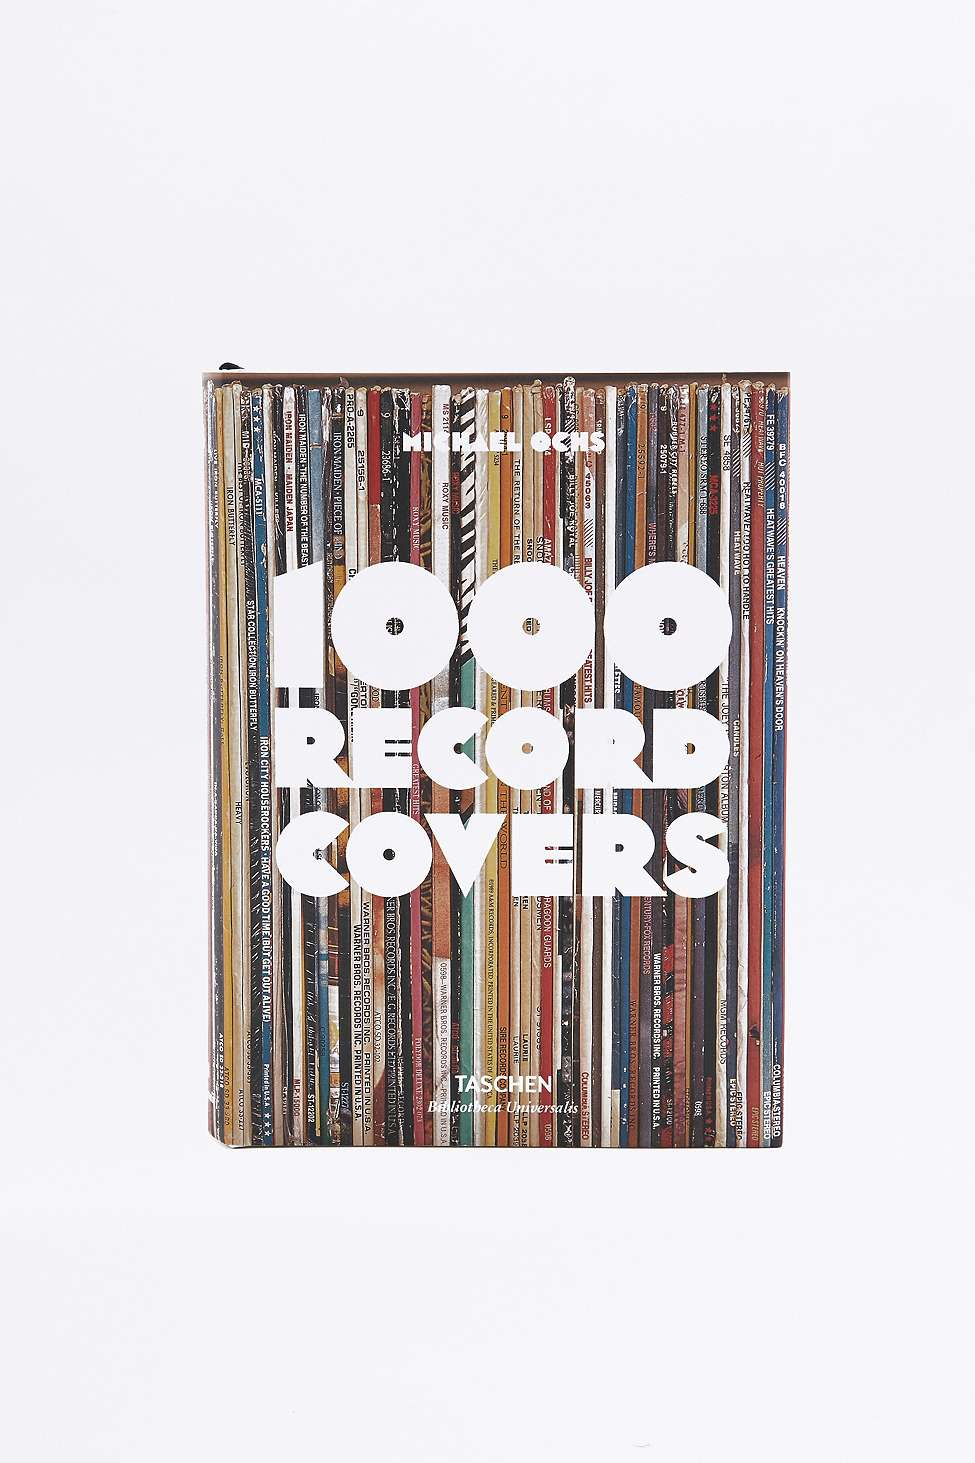 1000 Records bei Urban Outfitters